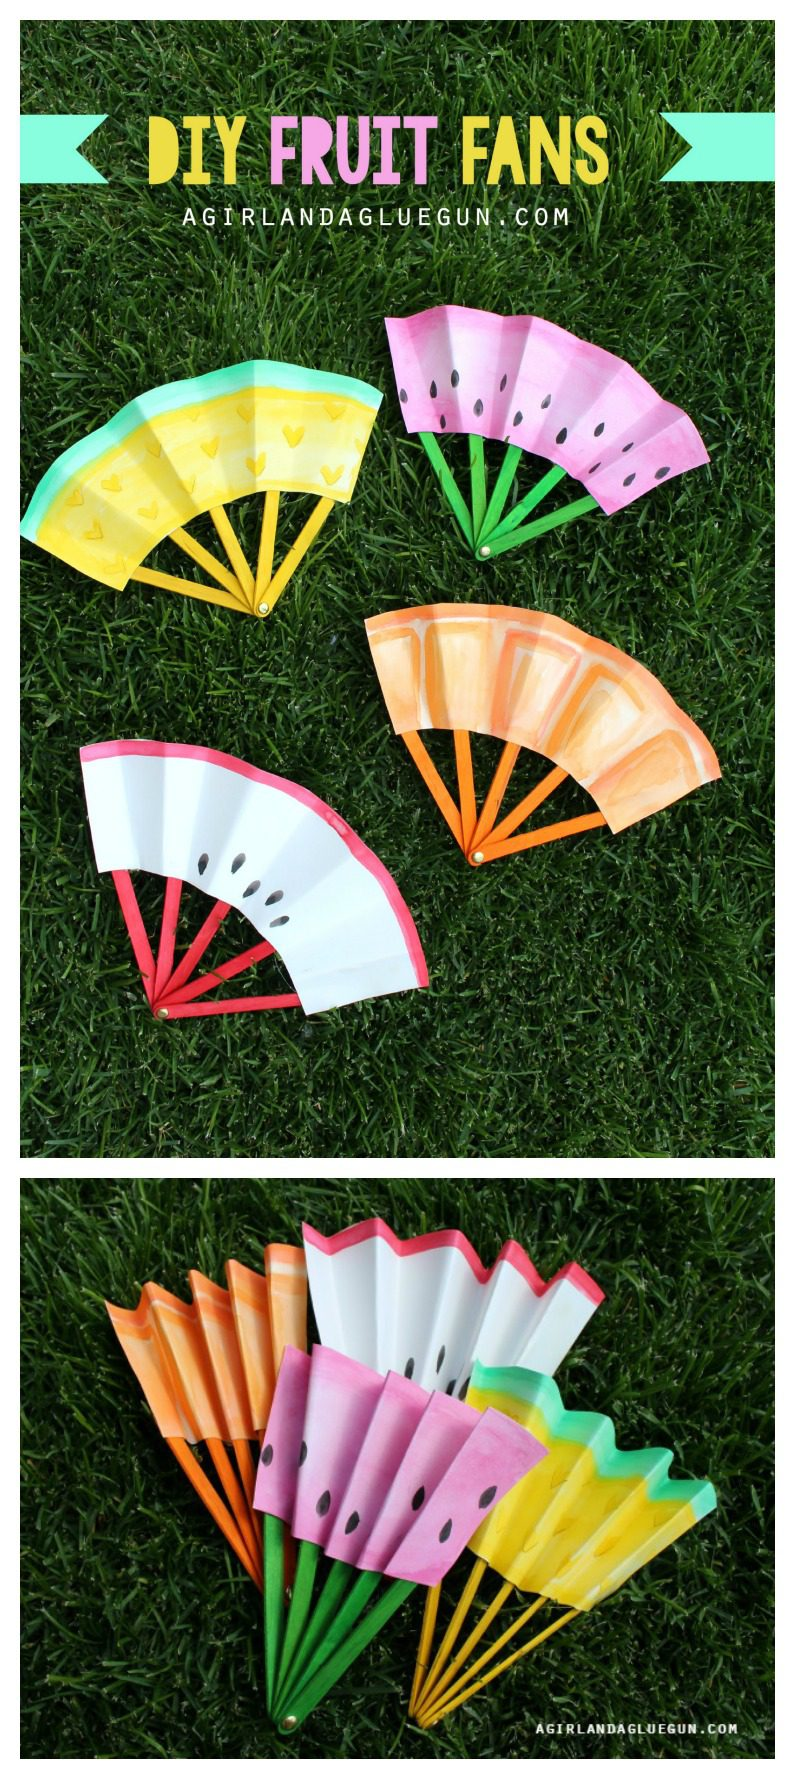 summer fun colorful diy fruit inspired paper folding fans on grass